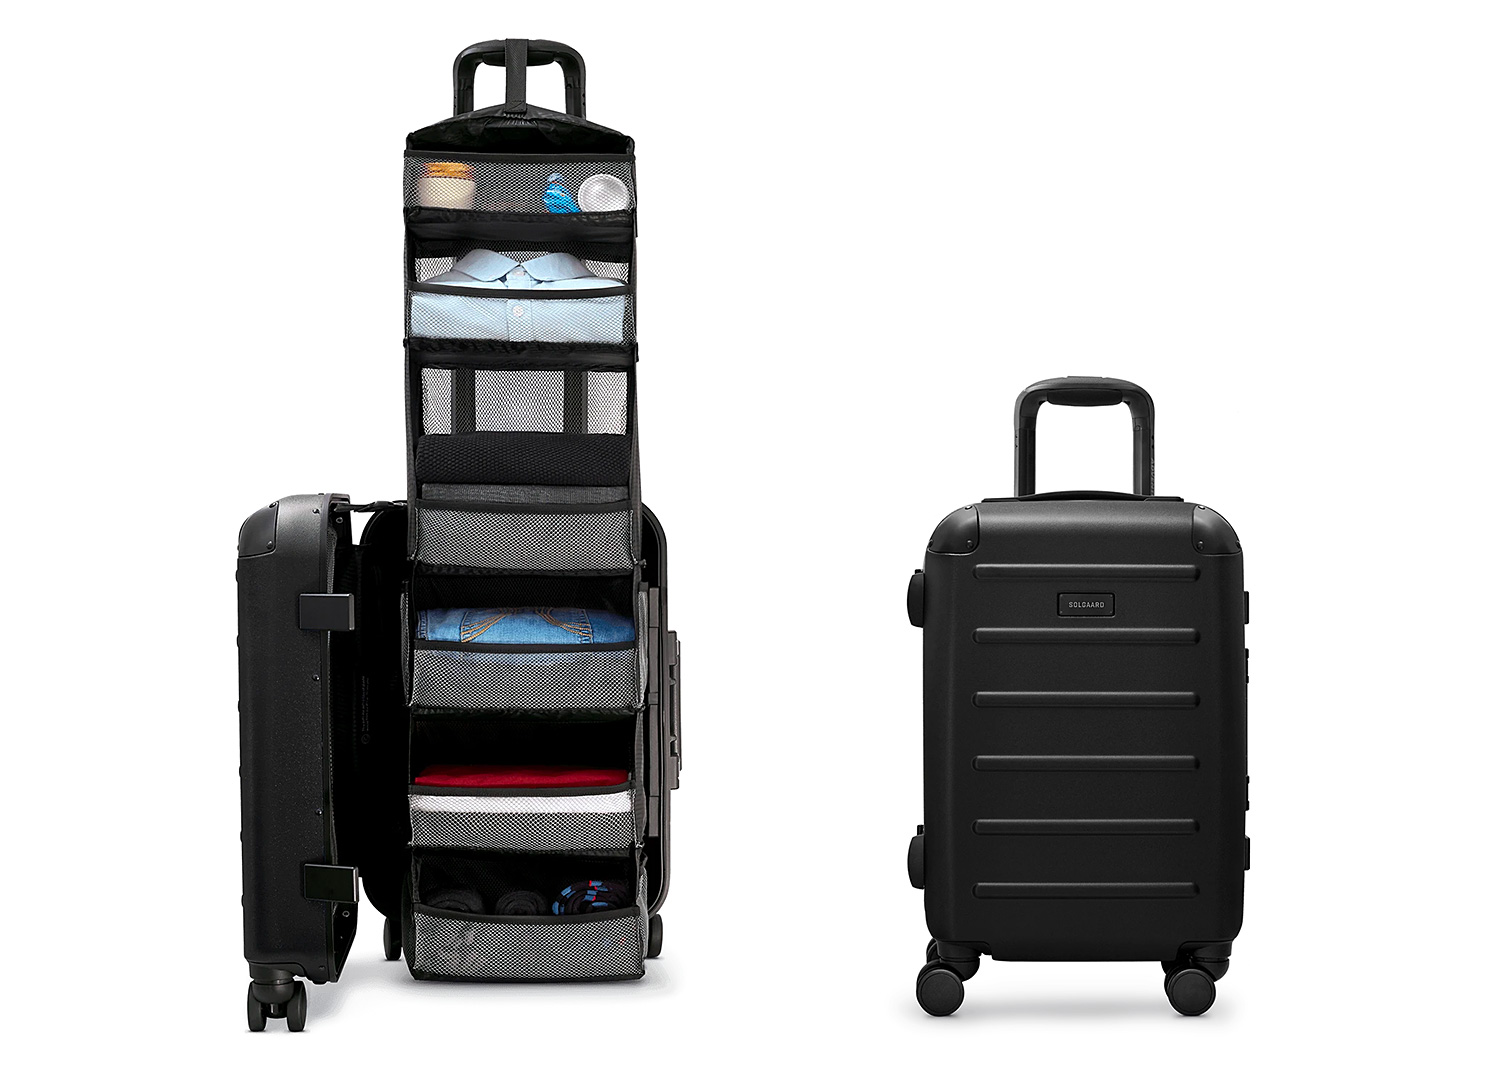 Solgaard's Carry-On Closet Eliminates Unpacking & Ocean Plastic Too at werd.com